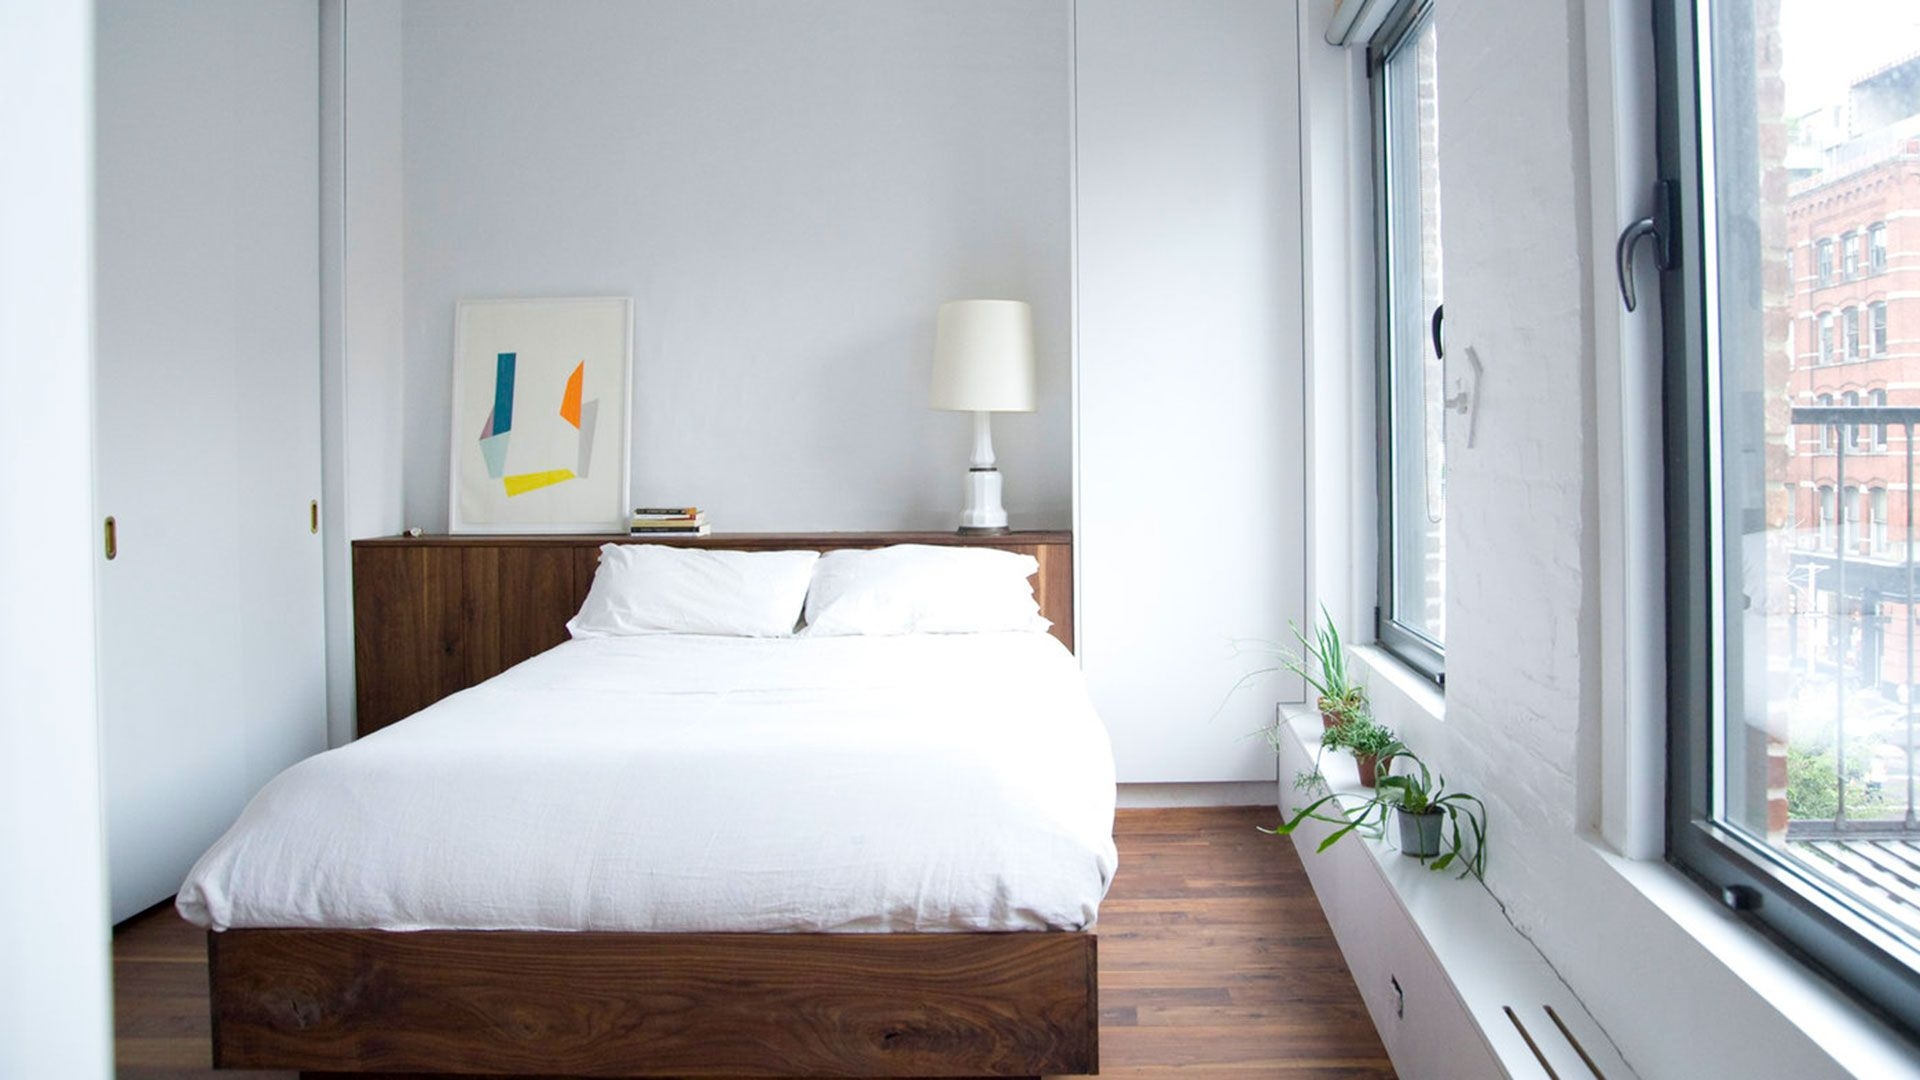 20 Tiny Bedrooms That Will Inspire Some Big Ideas  Stylecaster